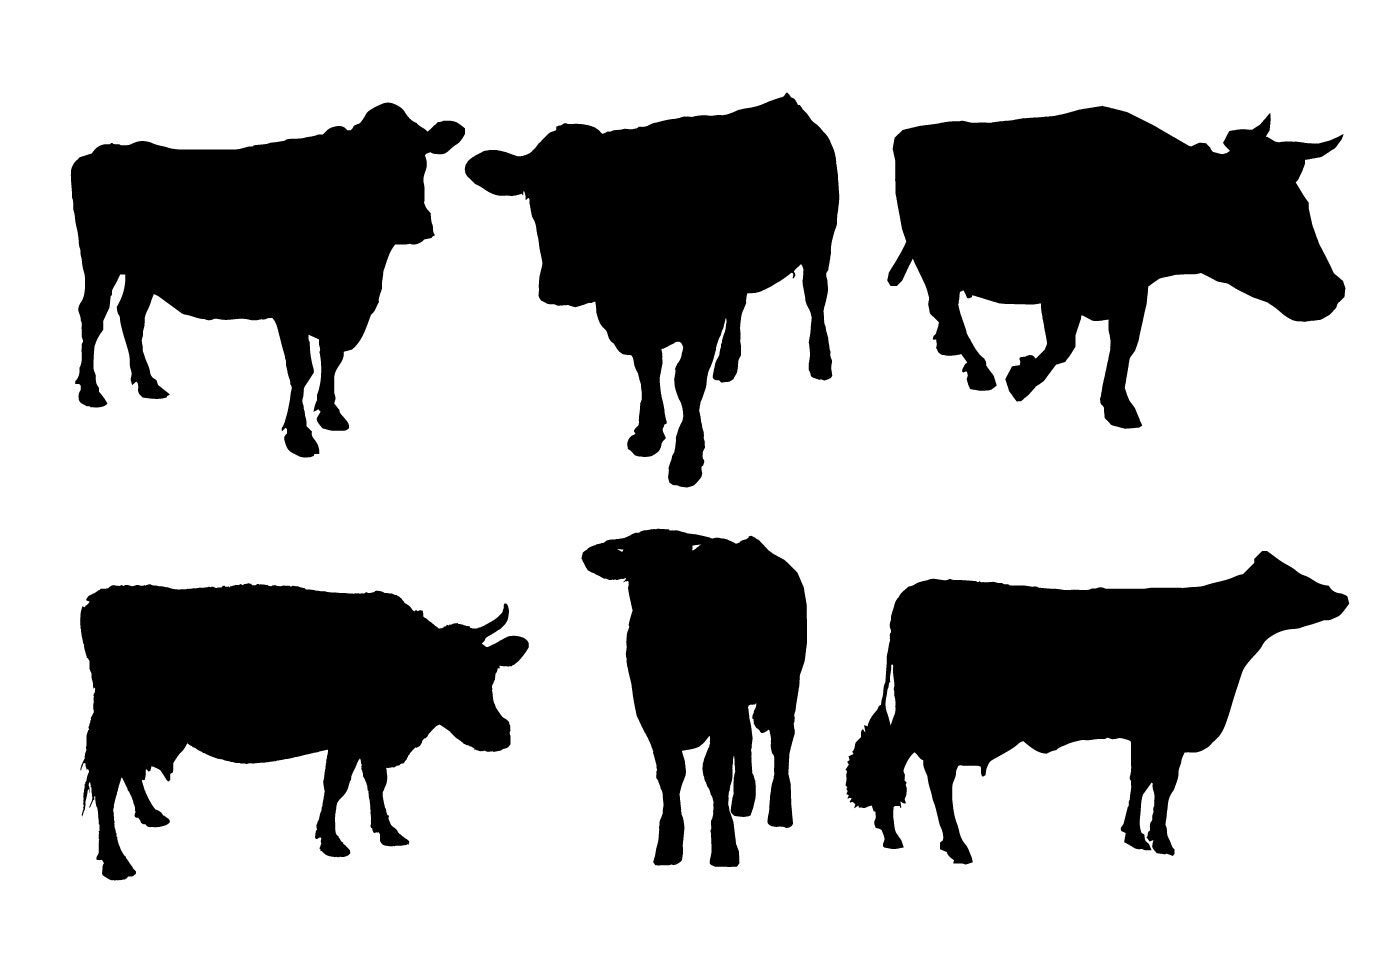 Cow Silhouette Vector - Download Free Vector Art, Stock ...